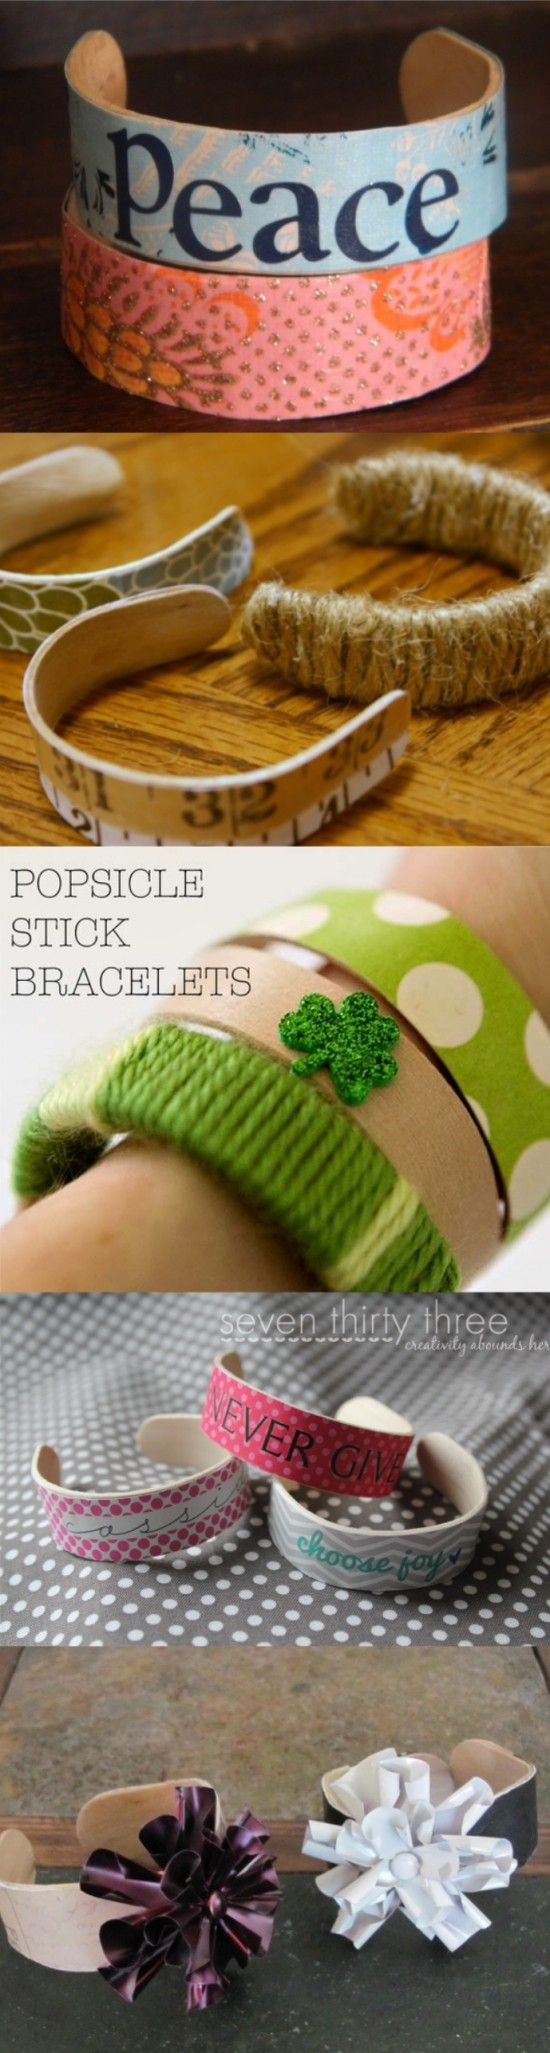 Cute DIY Popsicle Bracelets Boil stick for 15 mins then form in glass overnight